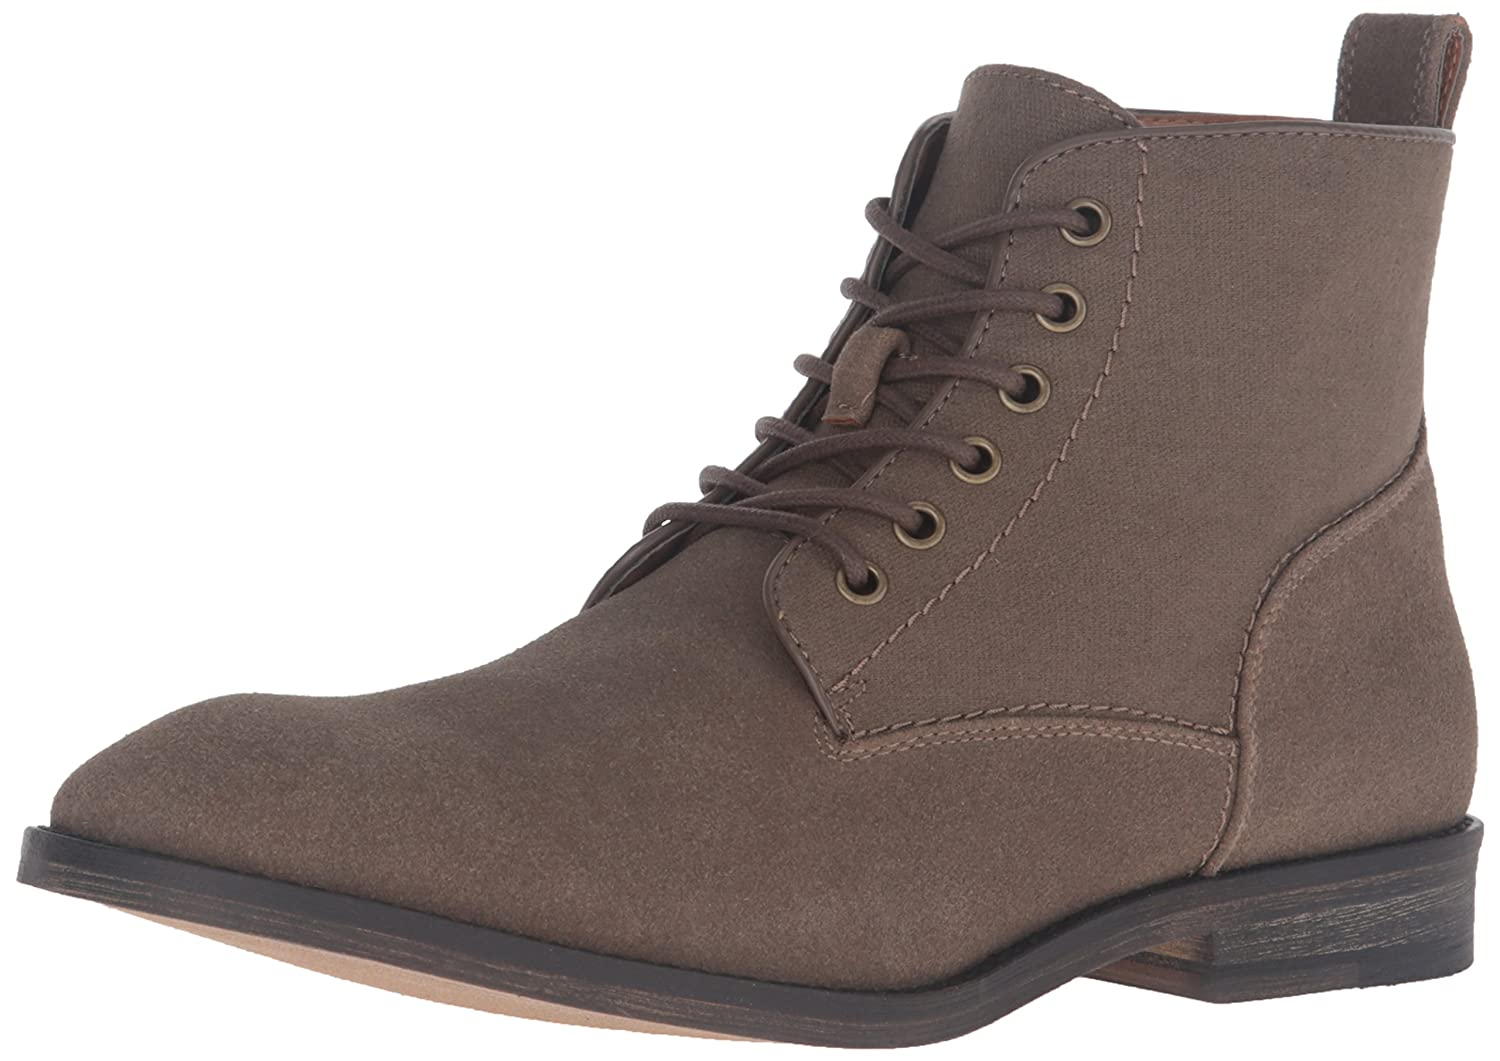 Mens Boots GUESS Ramsey Brown